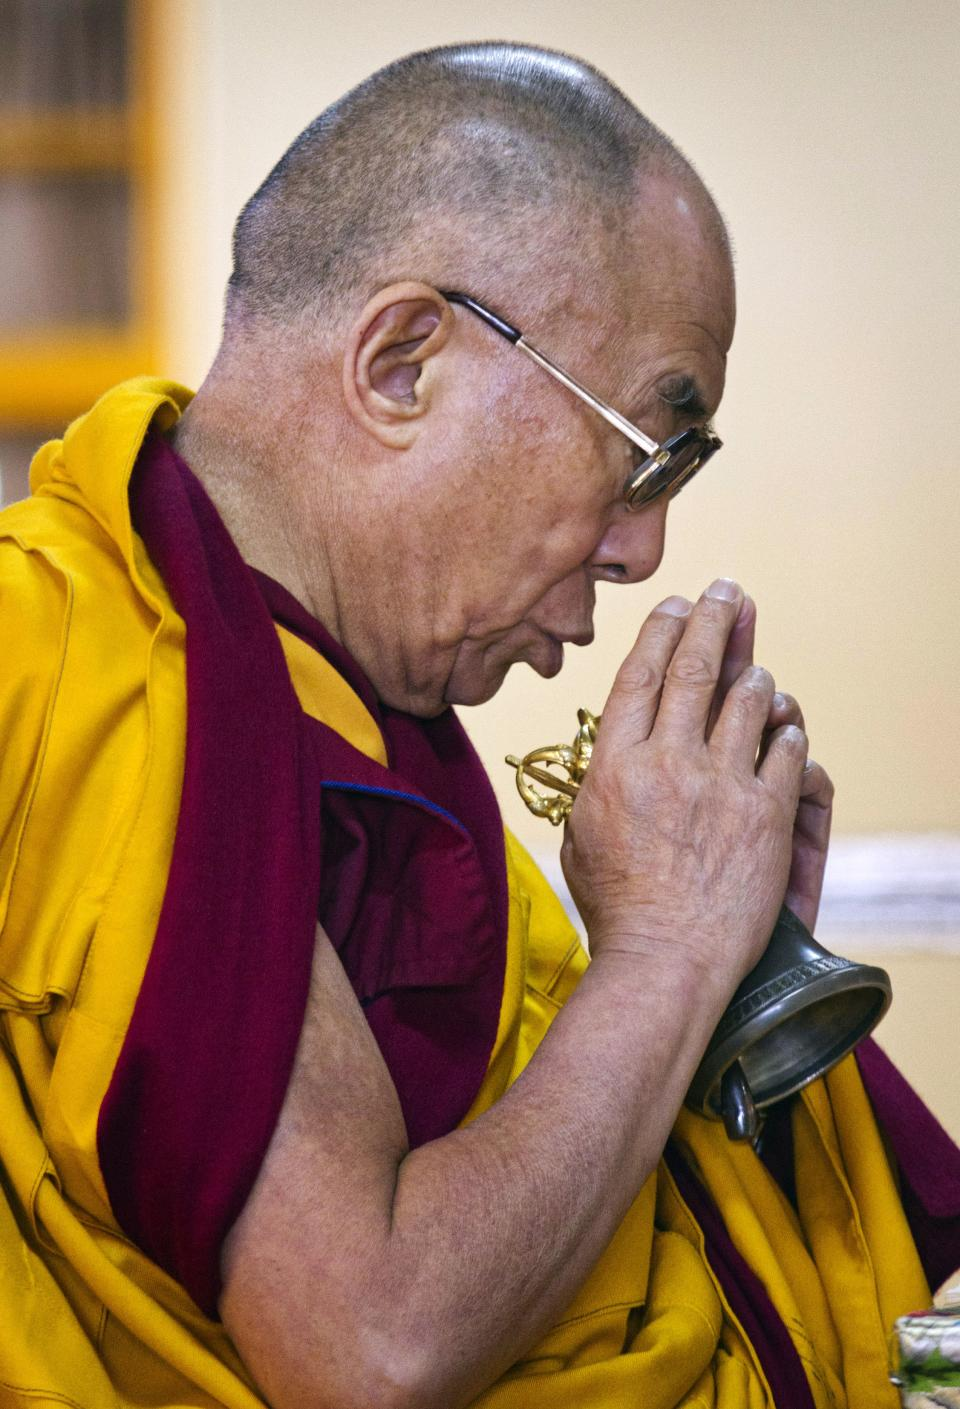 Tibetan spiritual leader the Dalai Lama prays during a prayer session in Dharmsala, India, Monday, Sept. 26, 2011. (AP Photo/Ashwini Bhatia)